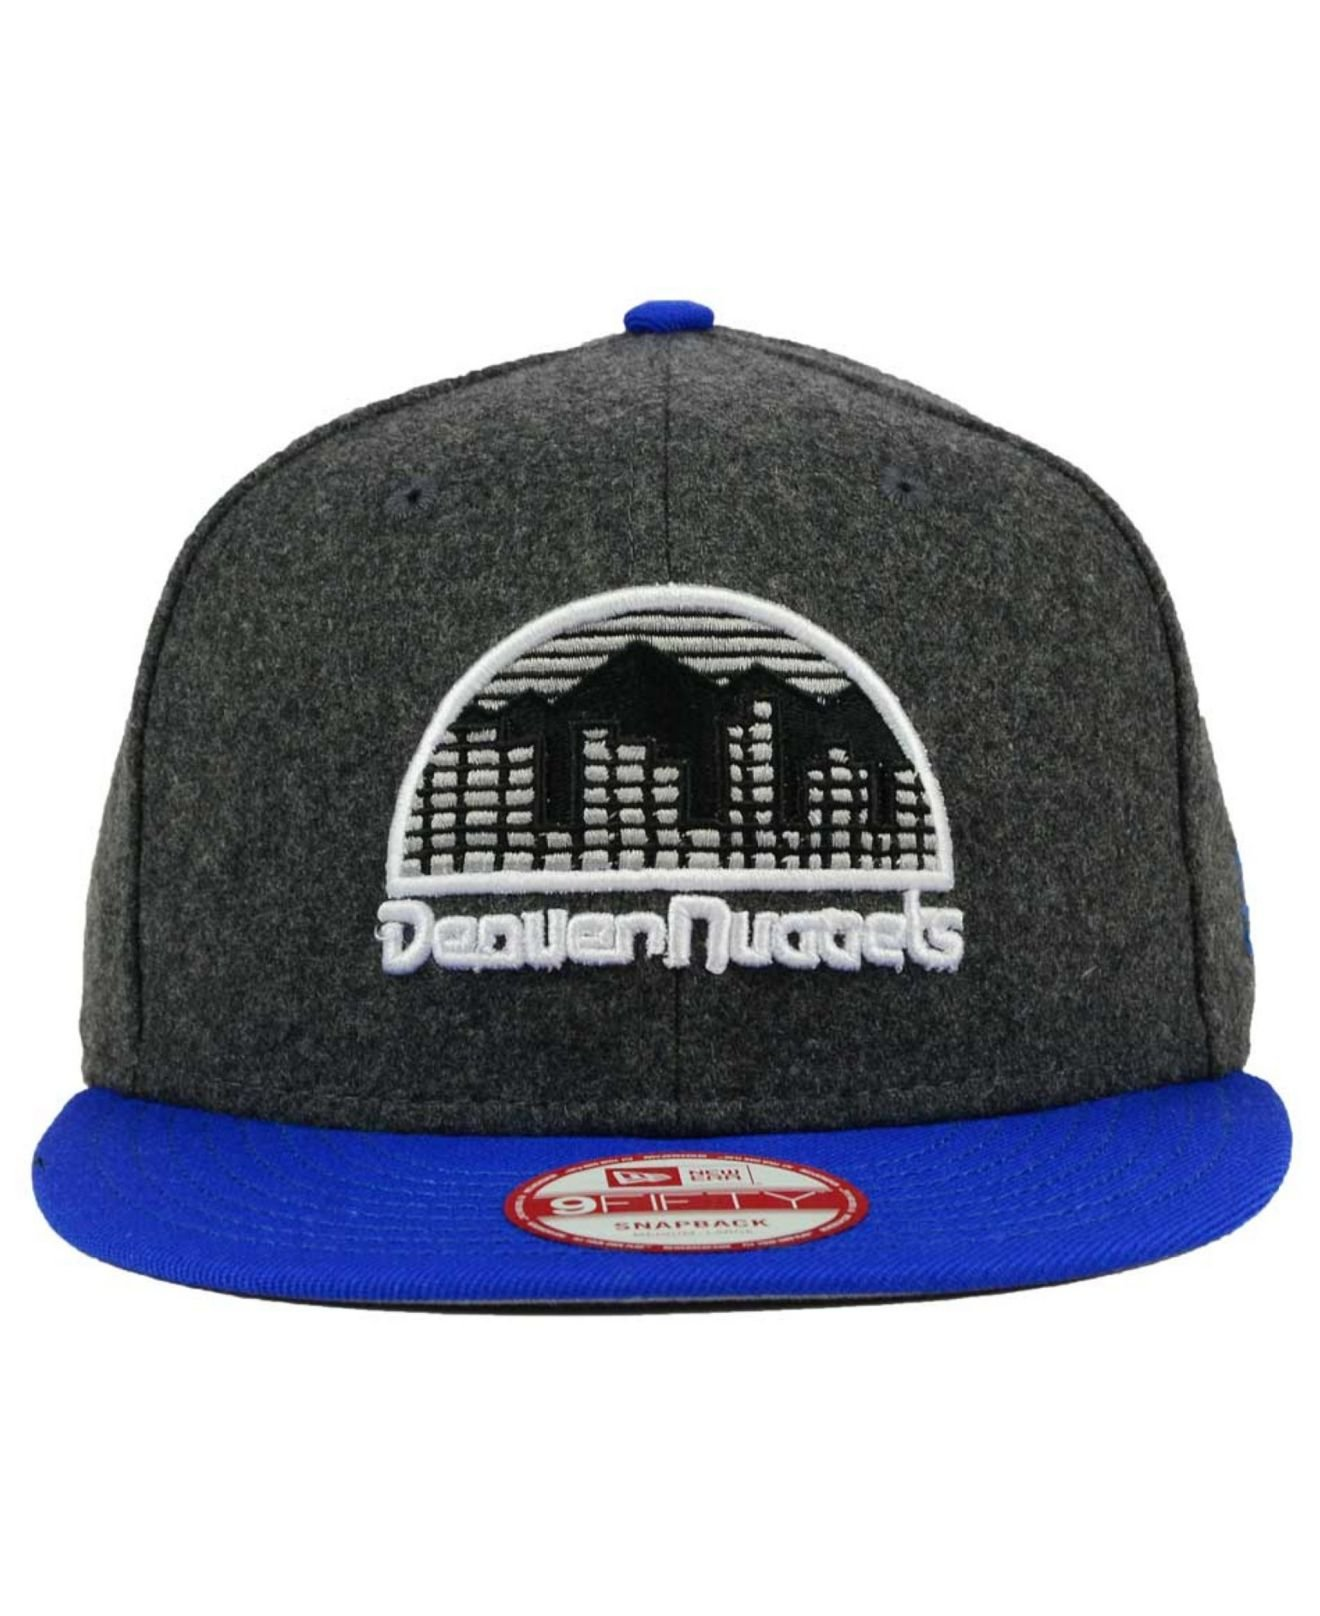 cheap for discount fc538 b20f1 Lyst - KTZ Denver Nuggets Shader Melt 9fifty Snapback Cap in Blue ...